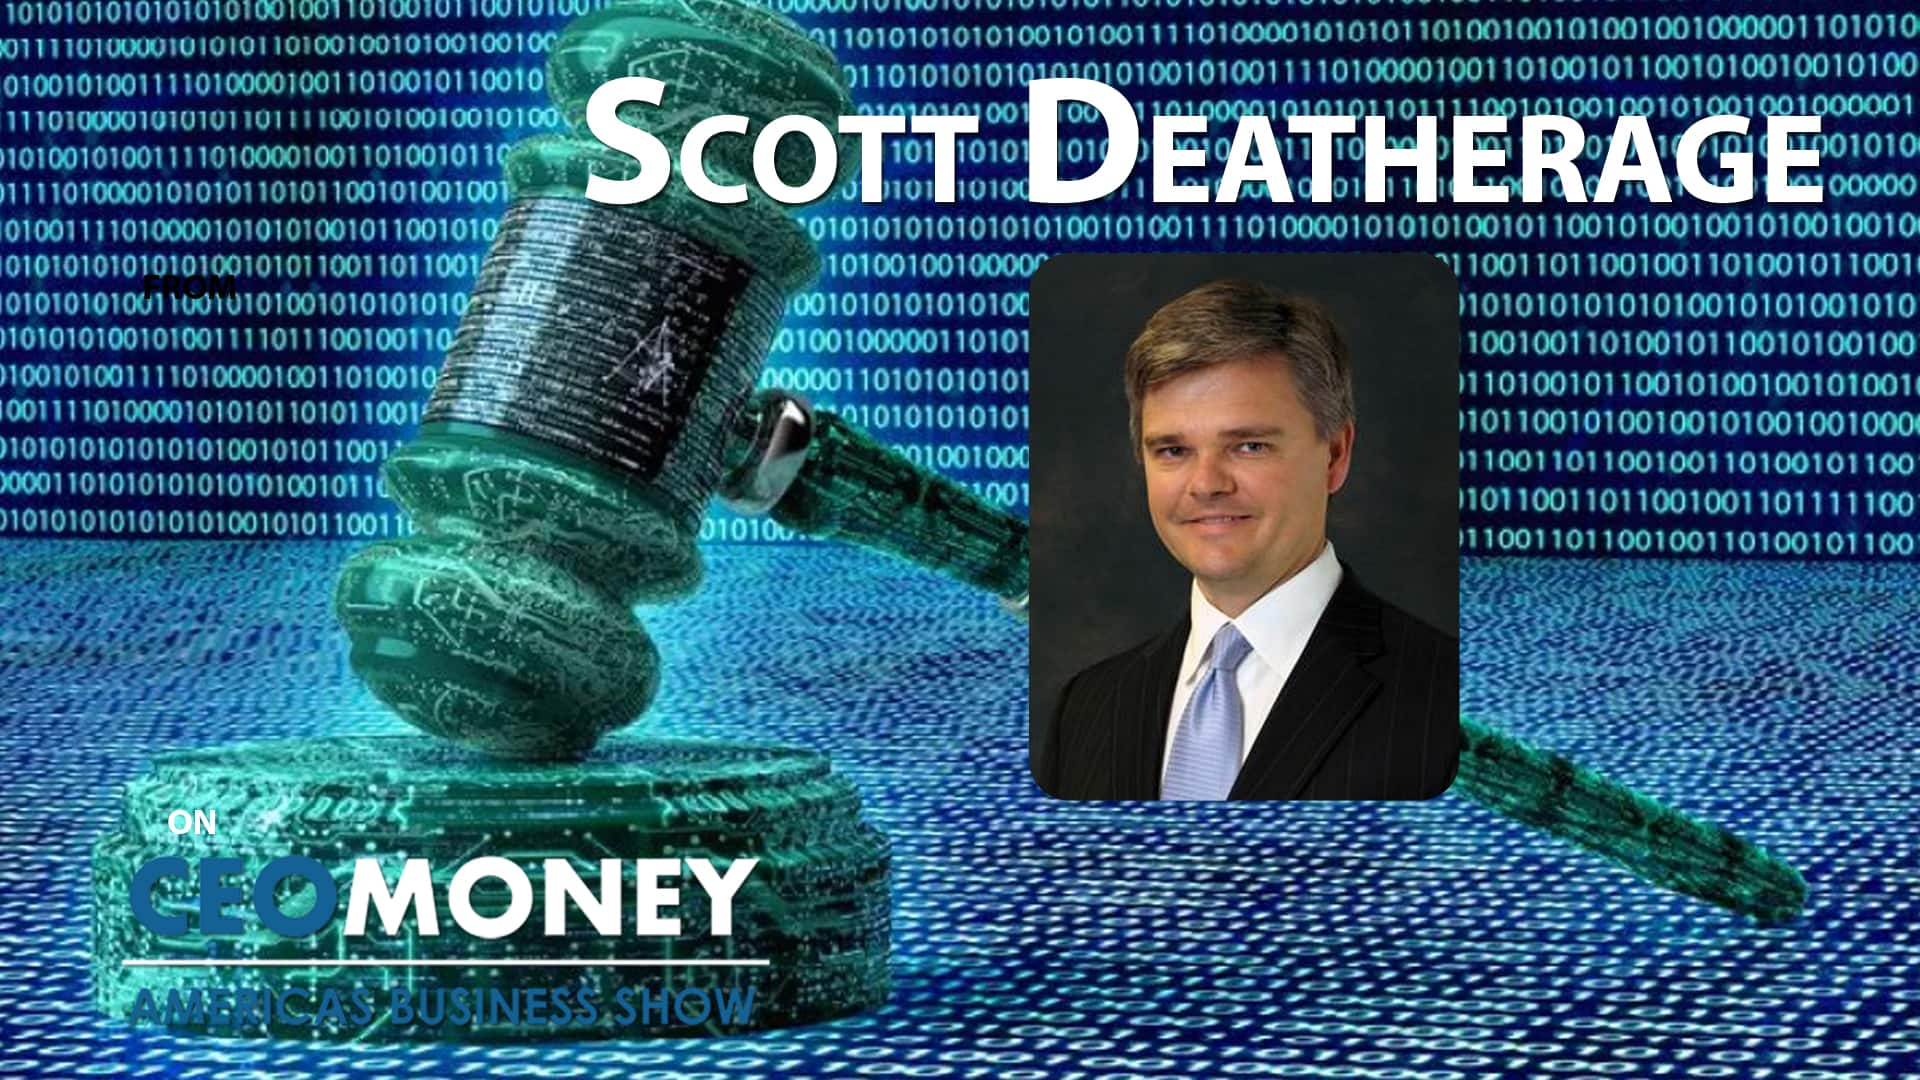 Blockchain advisor Scott Deatherage on how smart contracts may affect the oil and gas industry